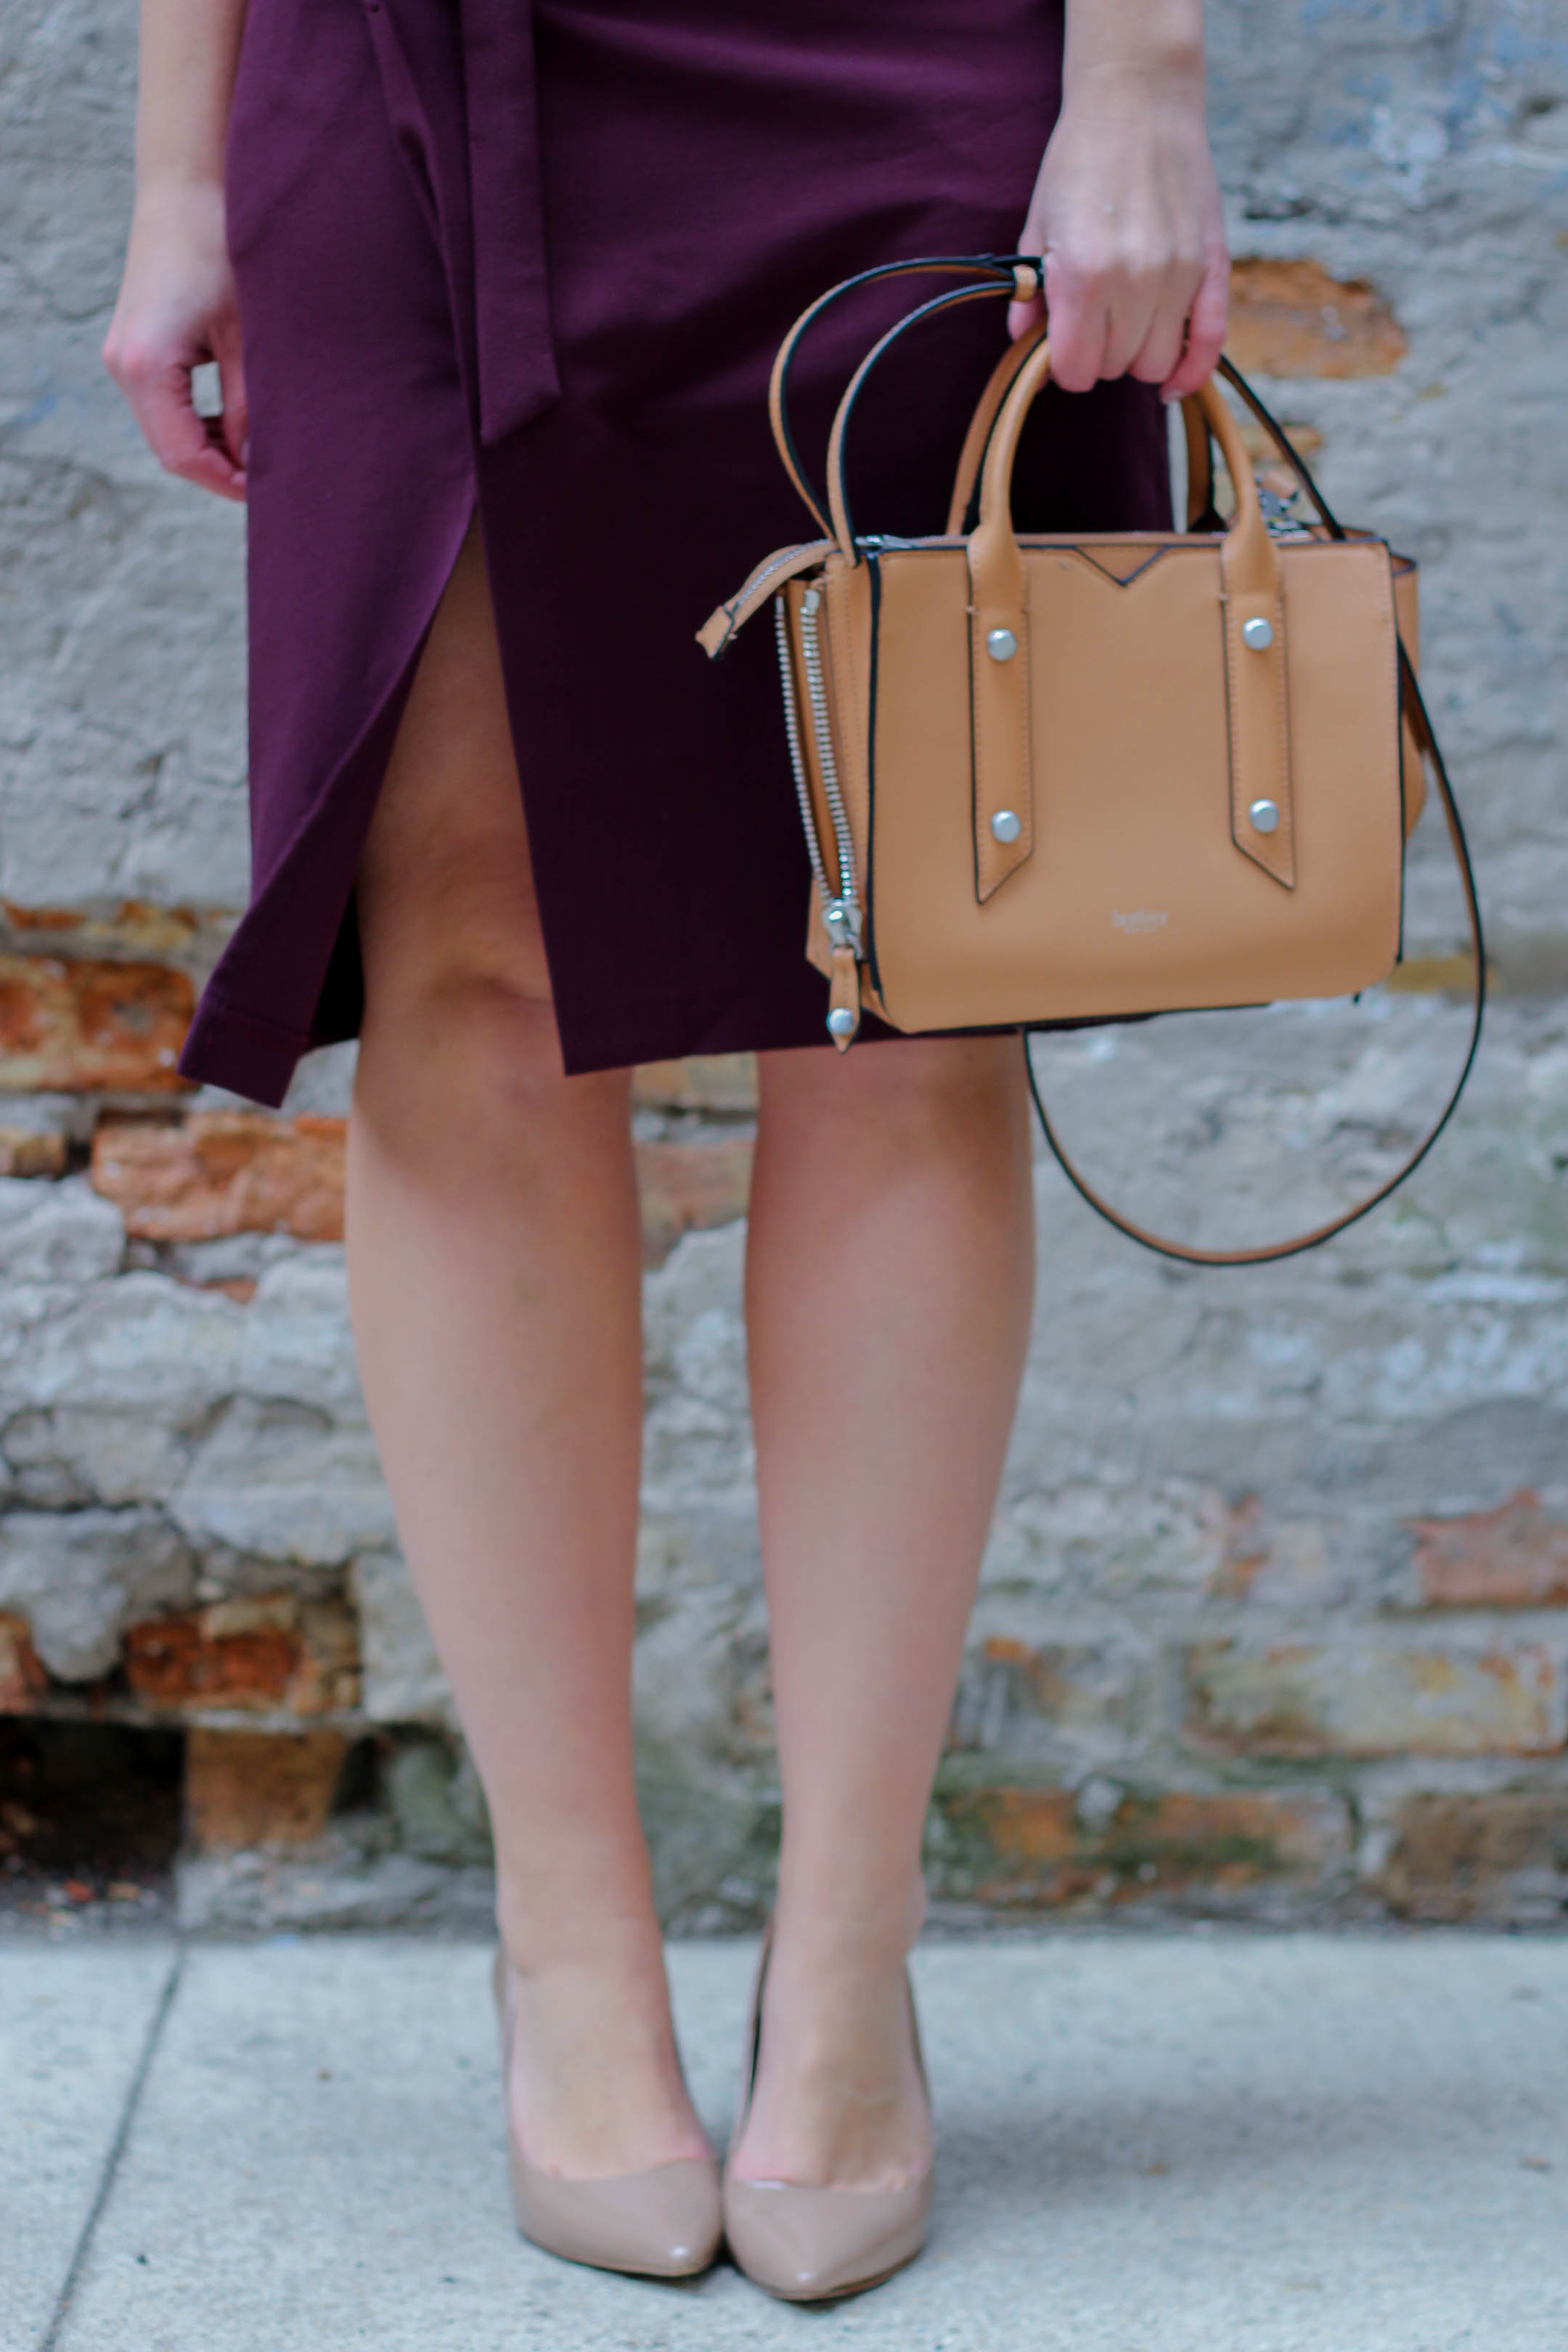 Nude heels and a simple nude handbag for the office